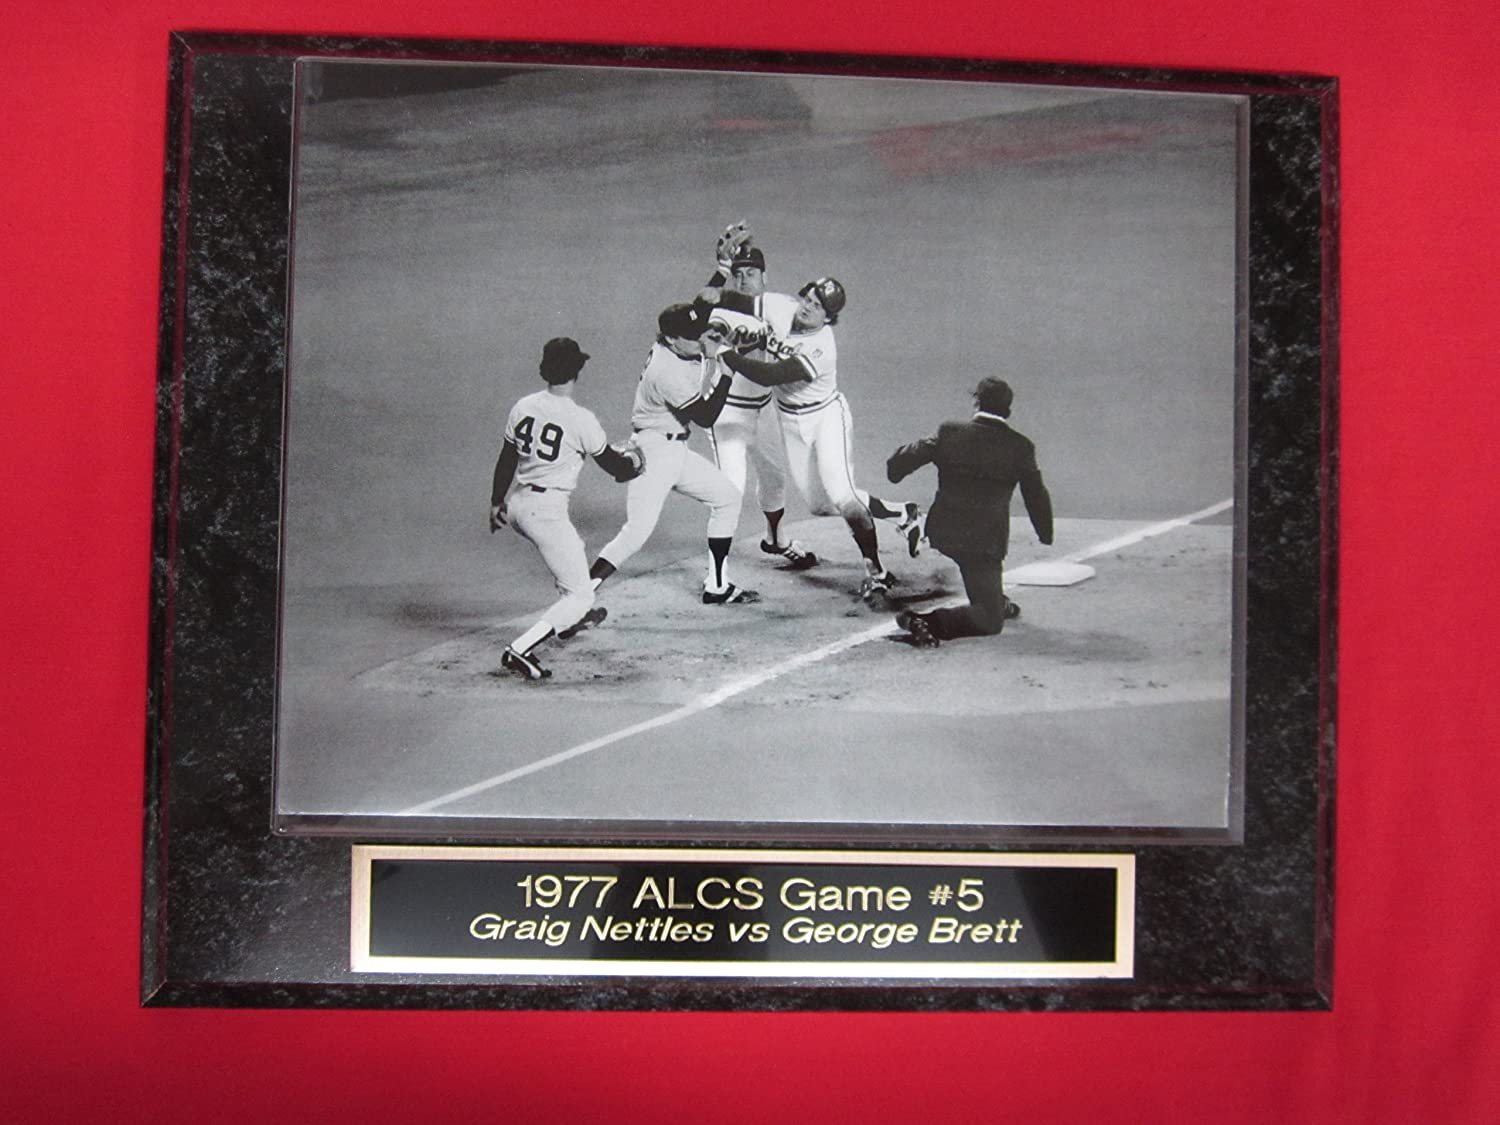 1977 ALCS Graig Nettles vs George Brett Fight Engraved Collector Plaque w/8x10 Photo J & C Baseball Clubhouse